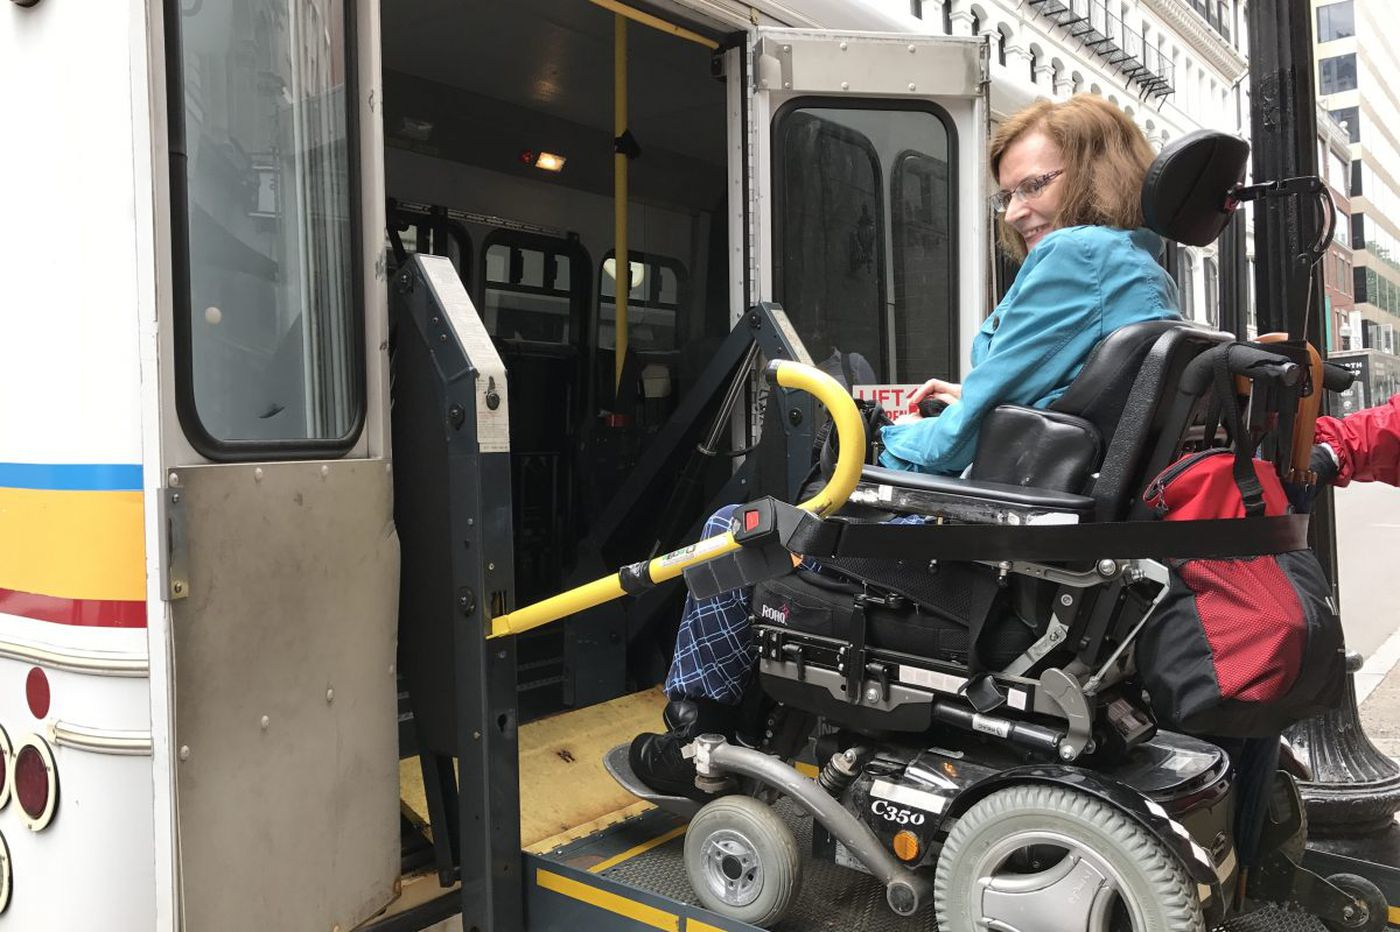 Should Philly follow Boston and remake paratransit with ride hailing?